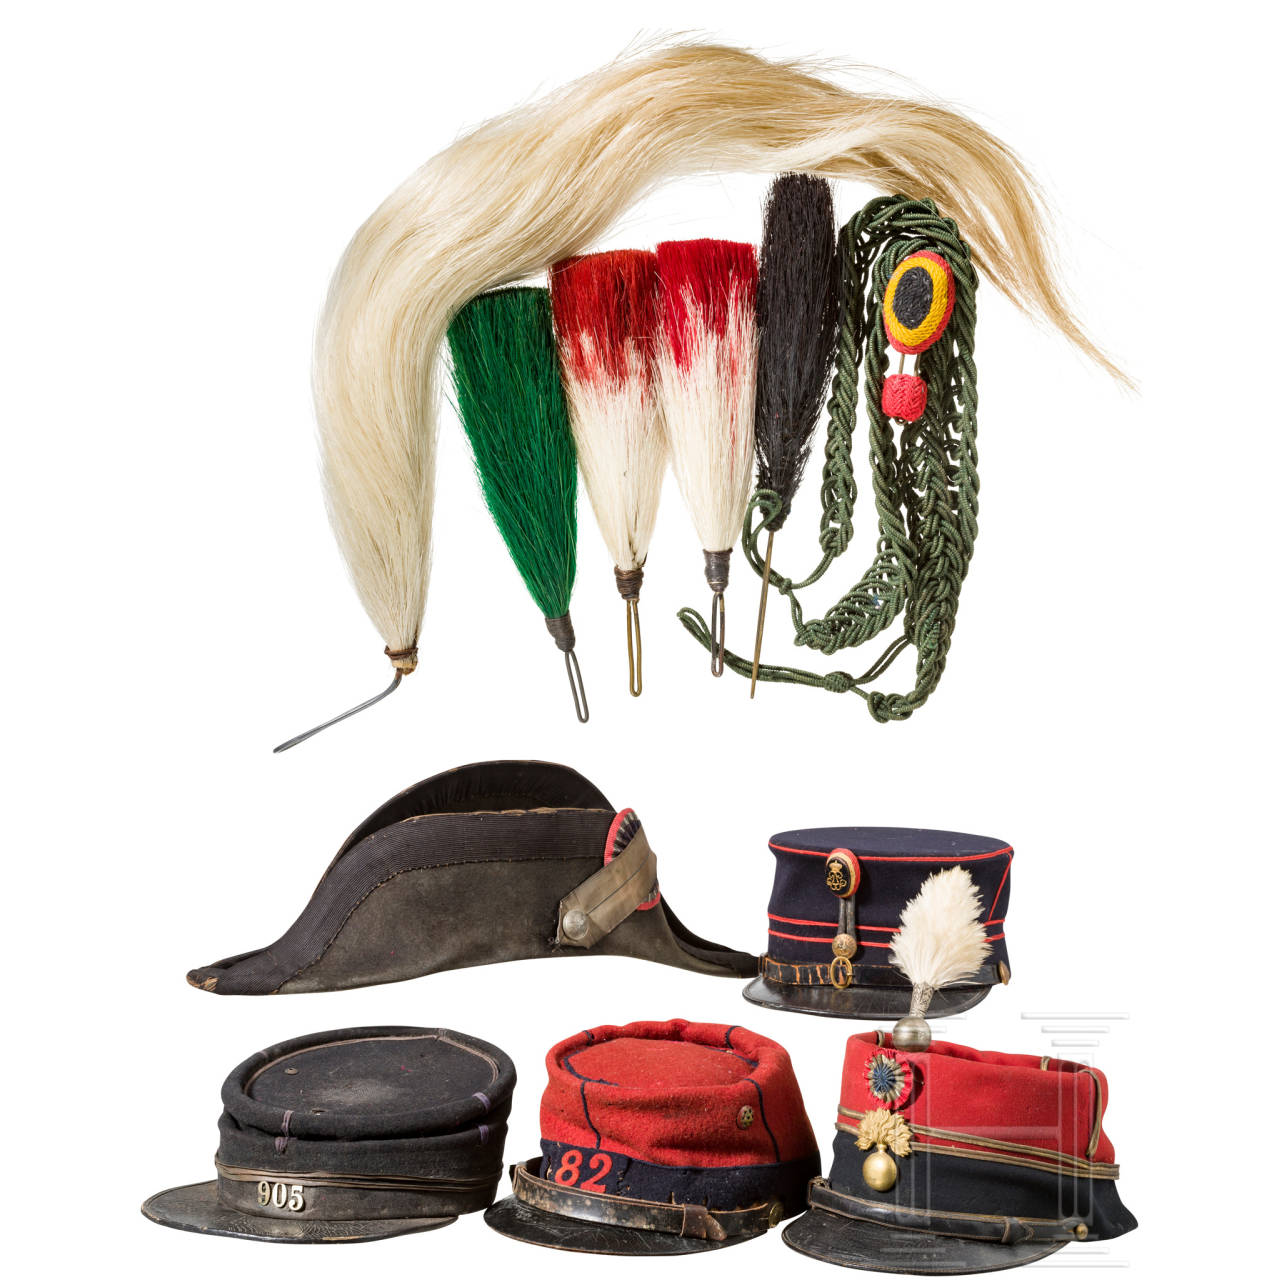 A collection of French/Belgian headgear and accessories, 19th/20th century